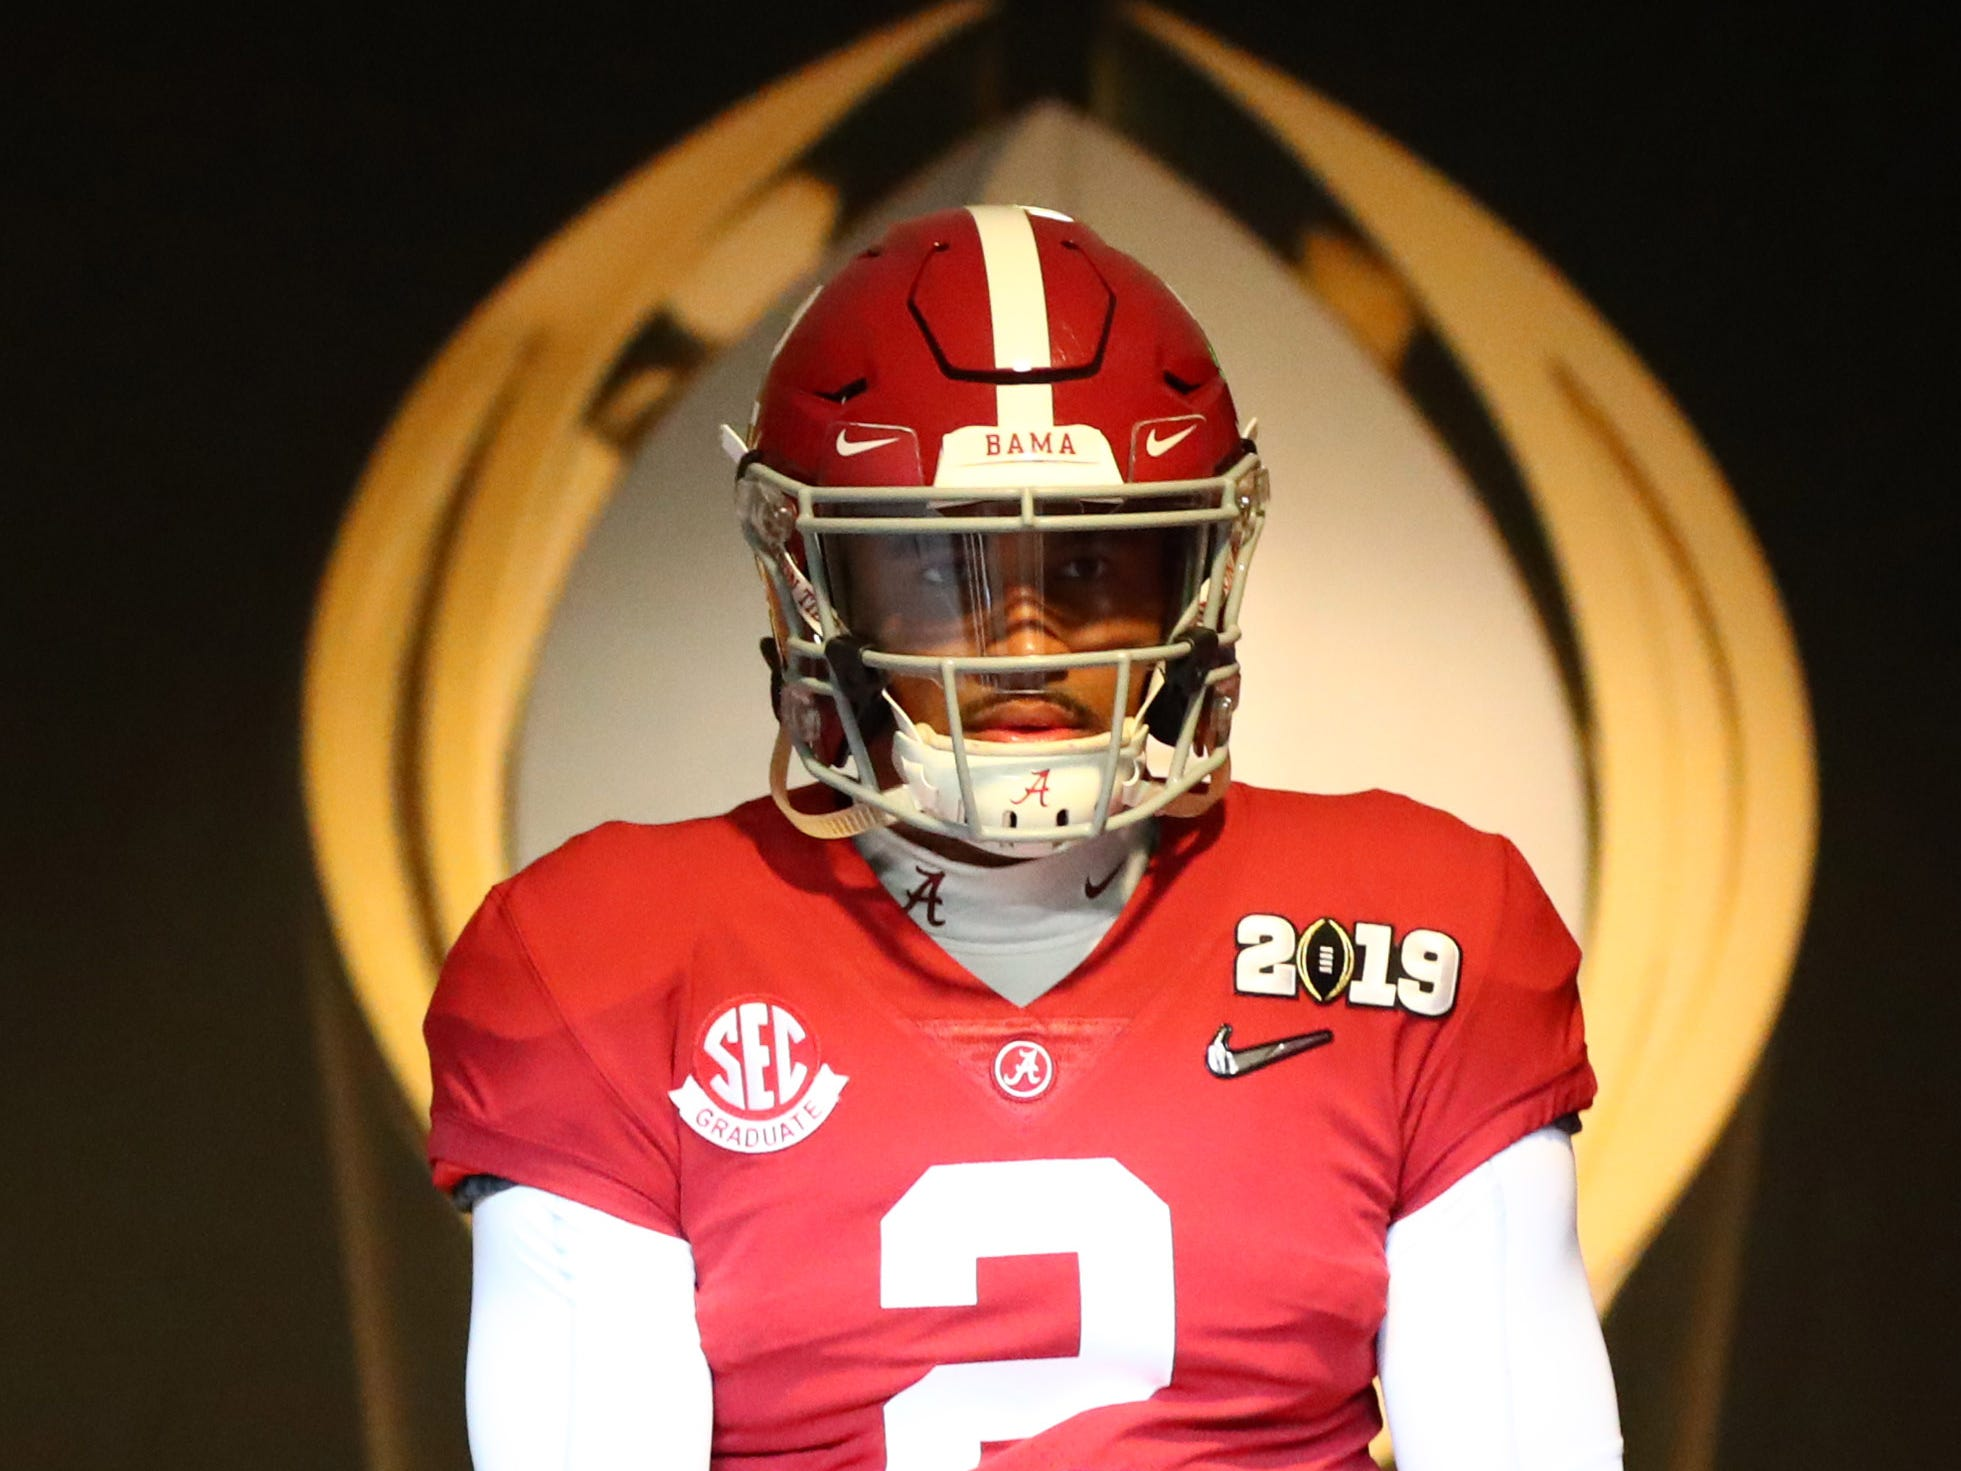 Jan 7, 2019; Santa Clara, CA, USA; Alabama Crimson Tide quarterback Jalen Hurts (2) walks to the field before the 2019 College Football Playoff Championship game against the Clemson Tigers at Levi's Stadium. Mandatory Credit: Mark J. Rebilas-USA TODAY Sports